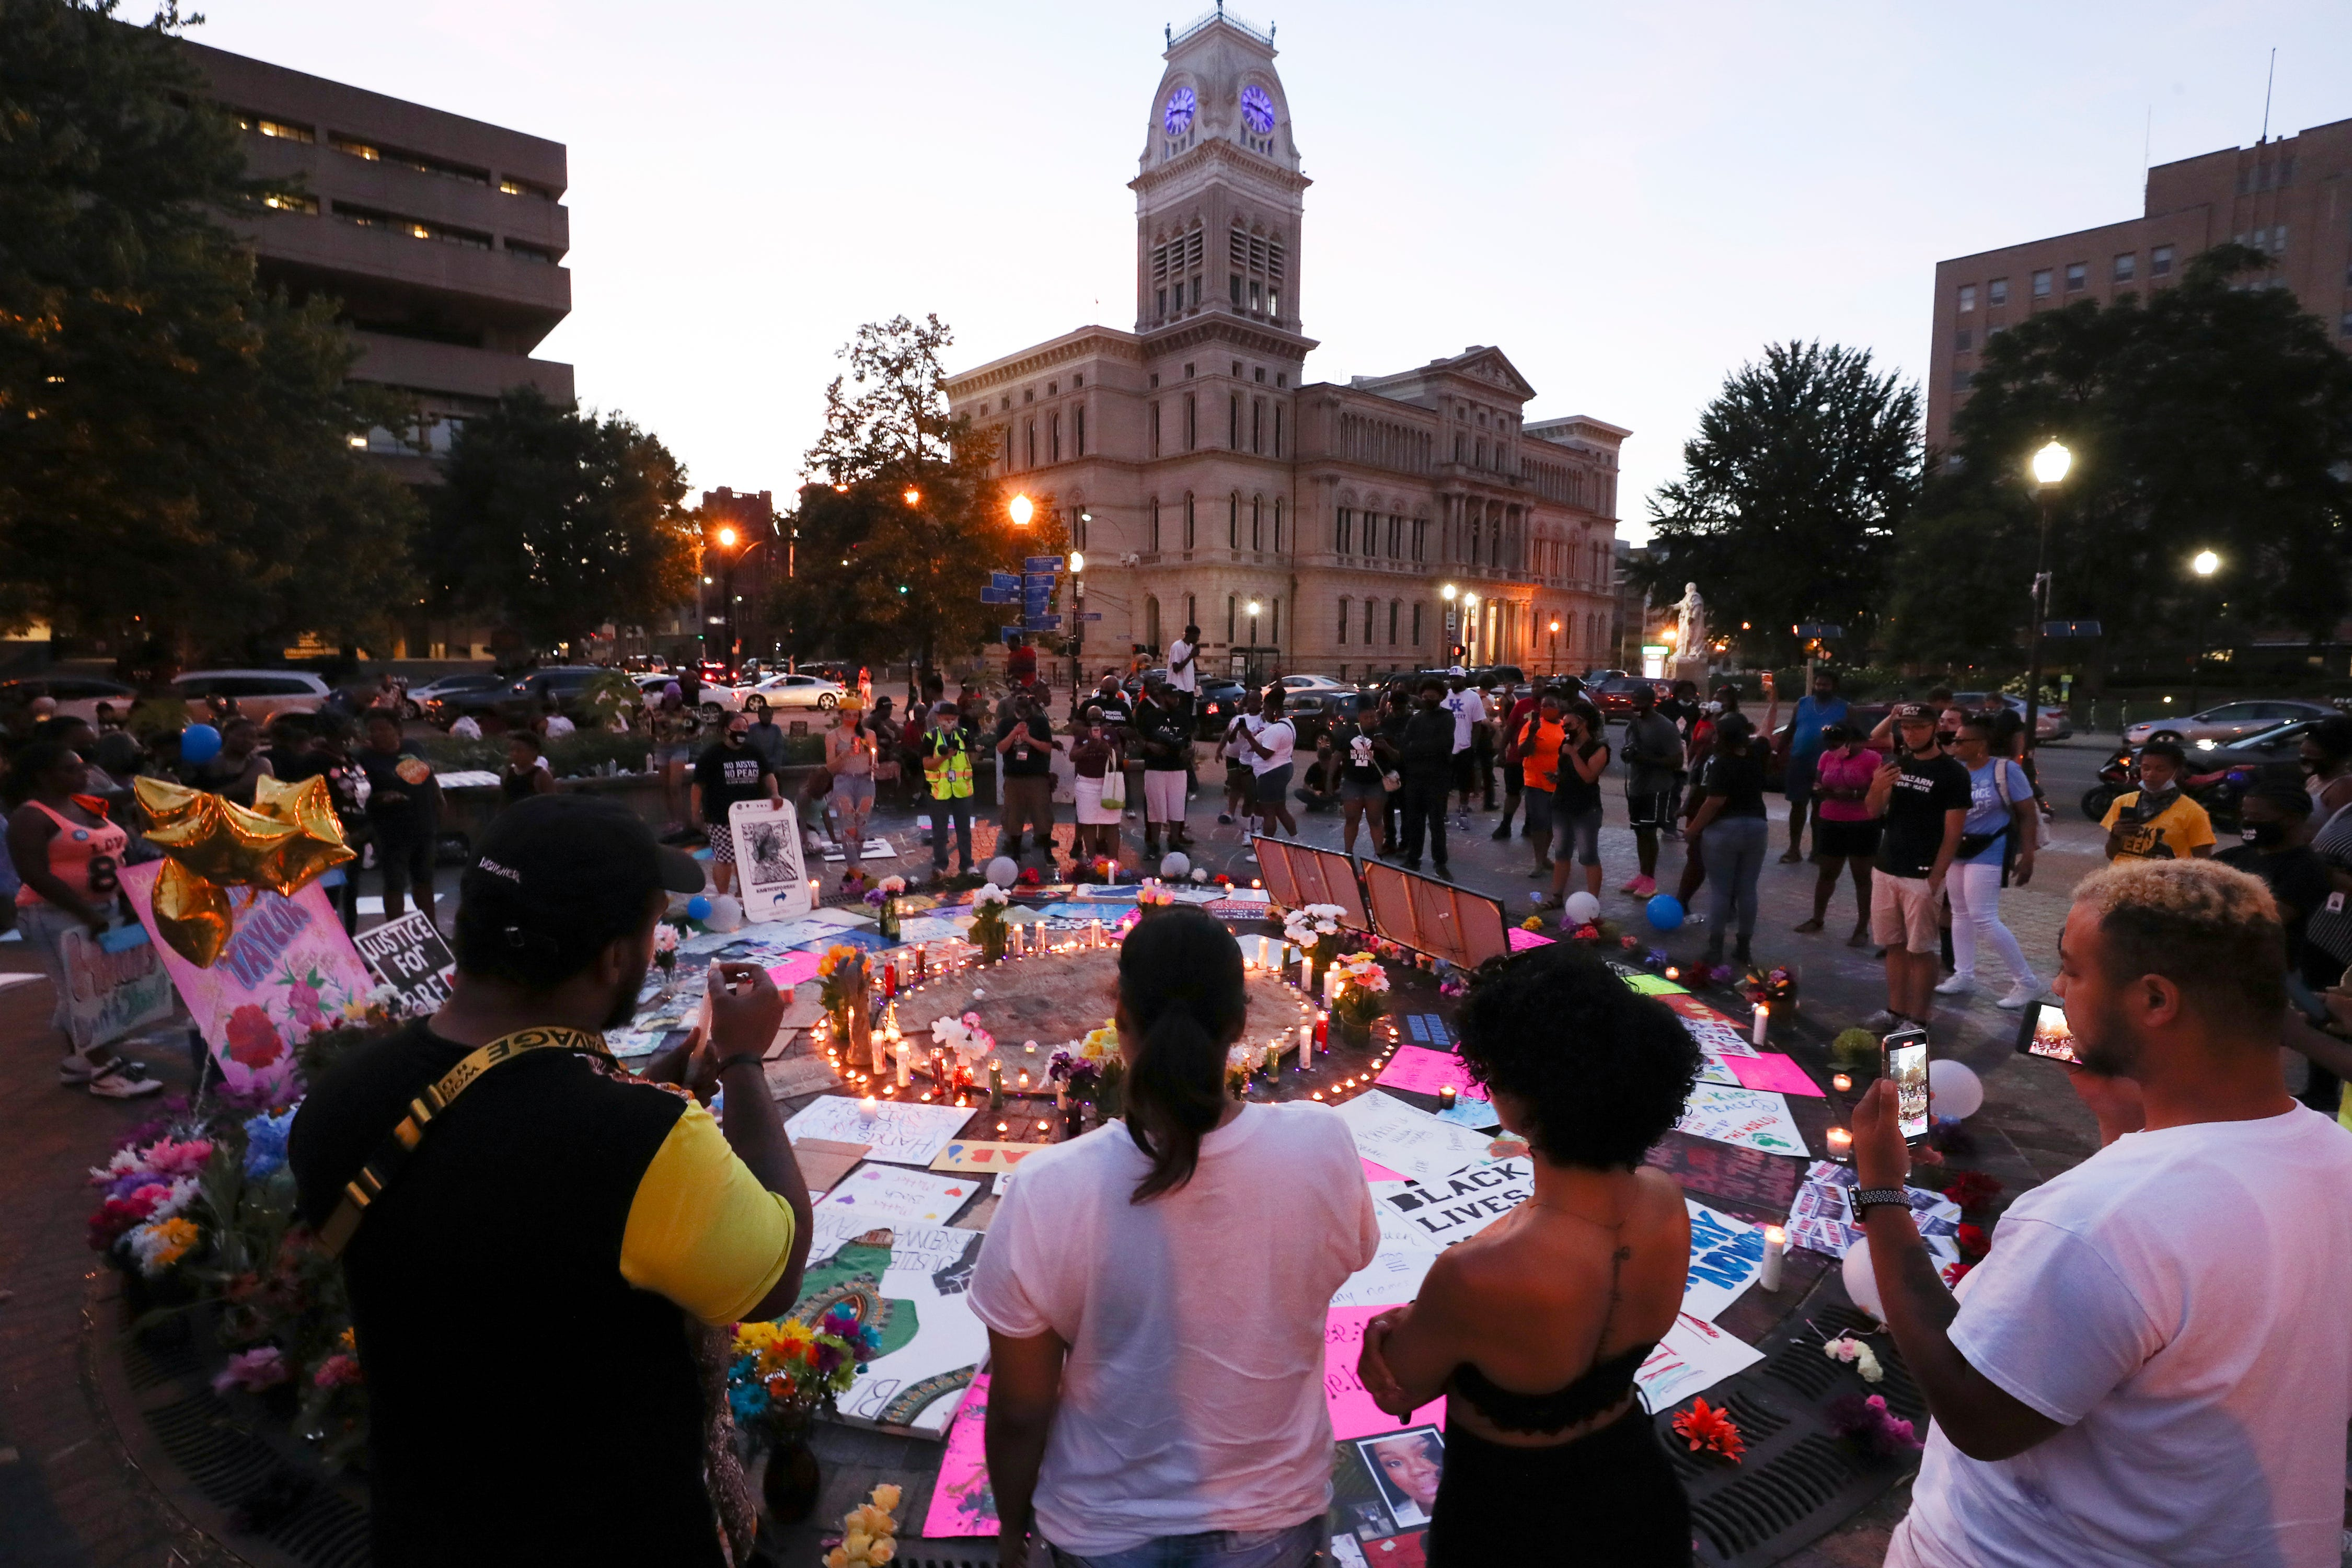 Protesters gathered around lighted candles at Breonna's Circle in Jefferson Square Park on July 16, 2020 to mark the 50th day of protests following the death of Breonna Taylor at the hands of LMPD.